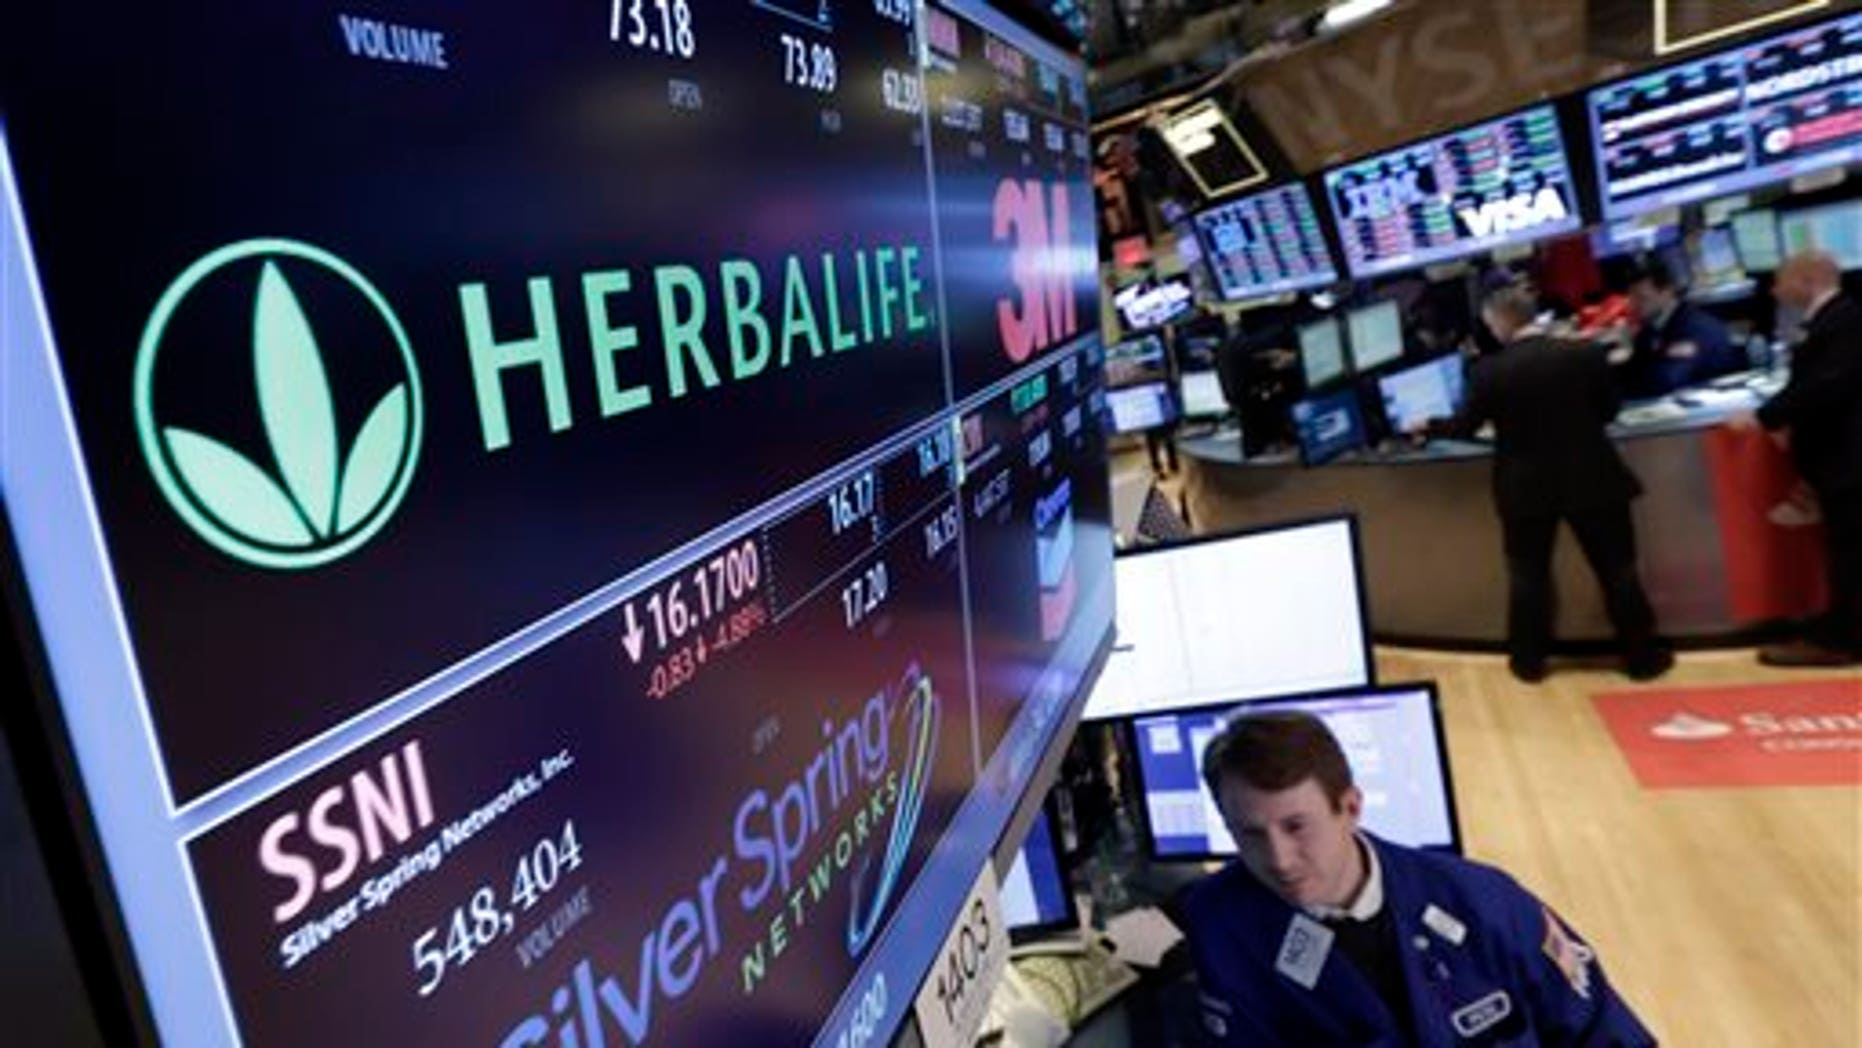 Specialist Peter Elkins foreground, works at the post that handles Herbalife, on the floor of the New York Stock Exchange, Thursday, Jan. 23, 2014. Herbalife Ltd. shares fell Thursday after U.S. Sen. Edward Markey called for an investigation into the company's business practices. (AP Photo/Richard Drew)